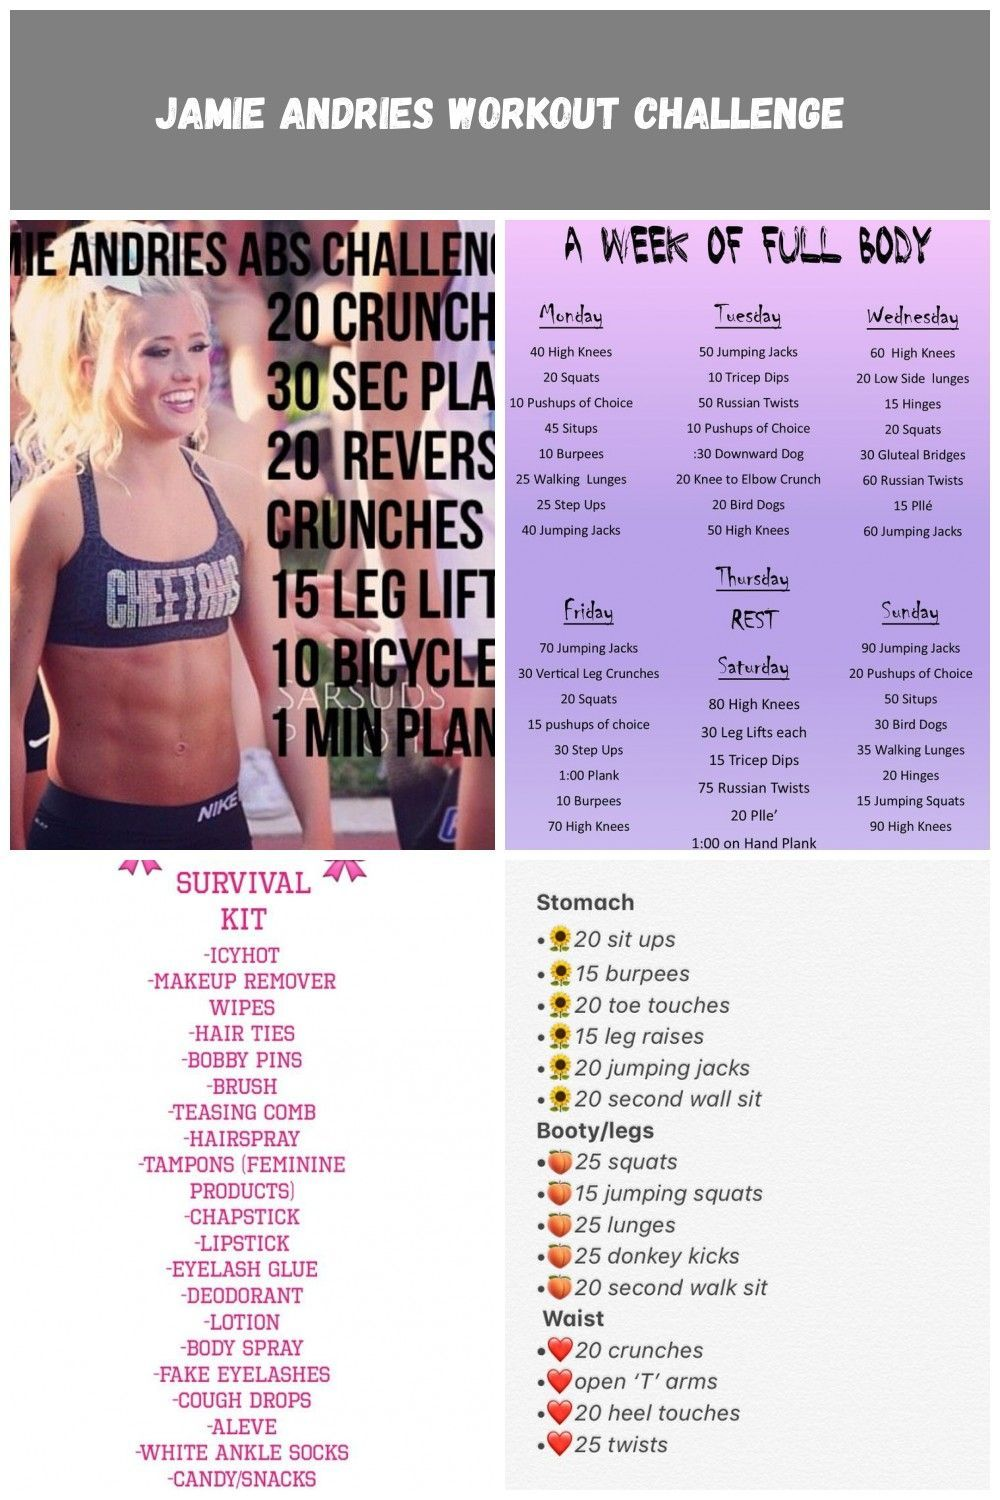 Jamie Andries Workout Challenge #Health #Fitness #Trusper #Tip cheer Workouts Jamie Andries Workout Challenge #cheerworkouts Jamie Andries Workout Challenge #Health #Fitness #Trusper #Tip cheer Workouts Jamie Andries Workout Challenge #cheerworkouts